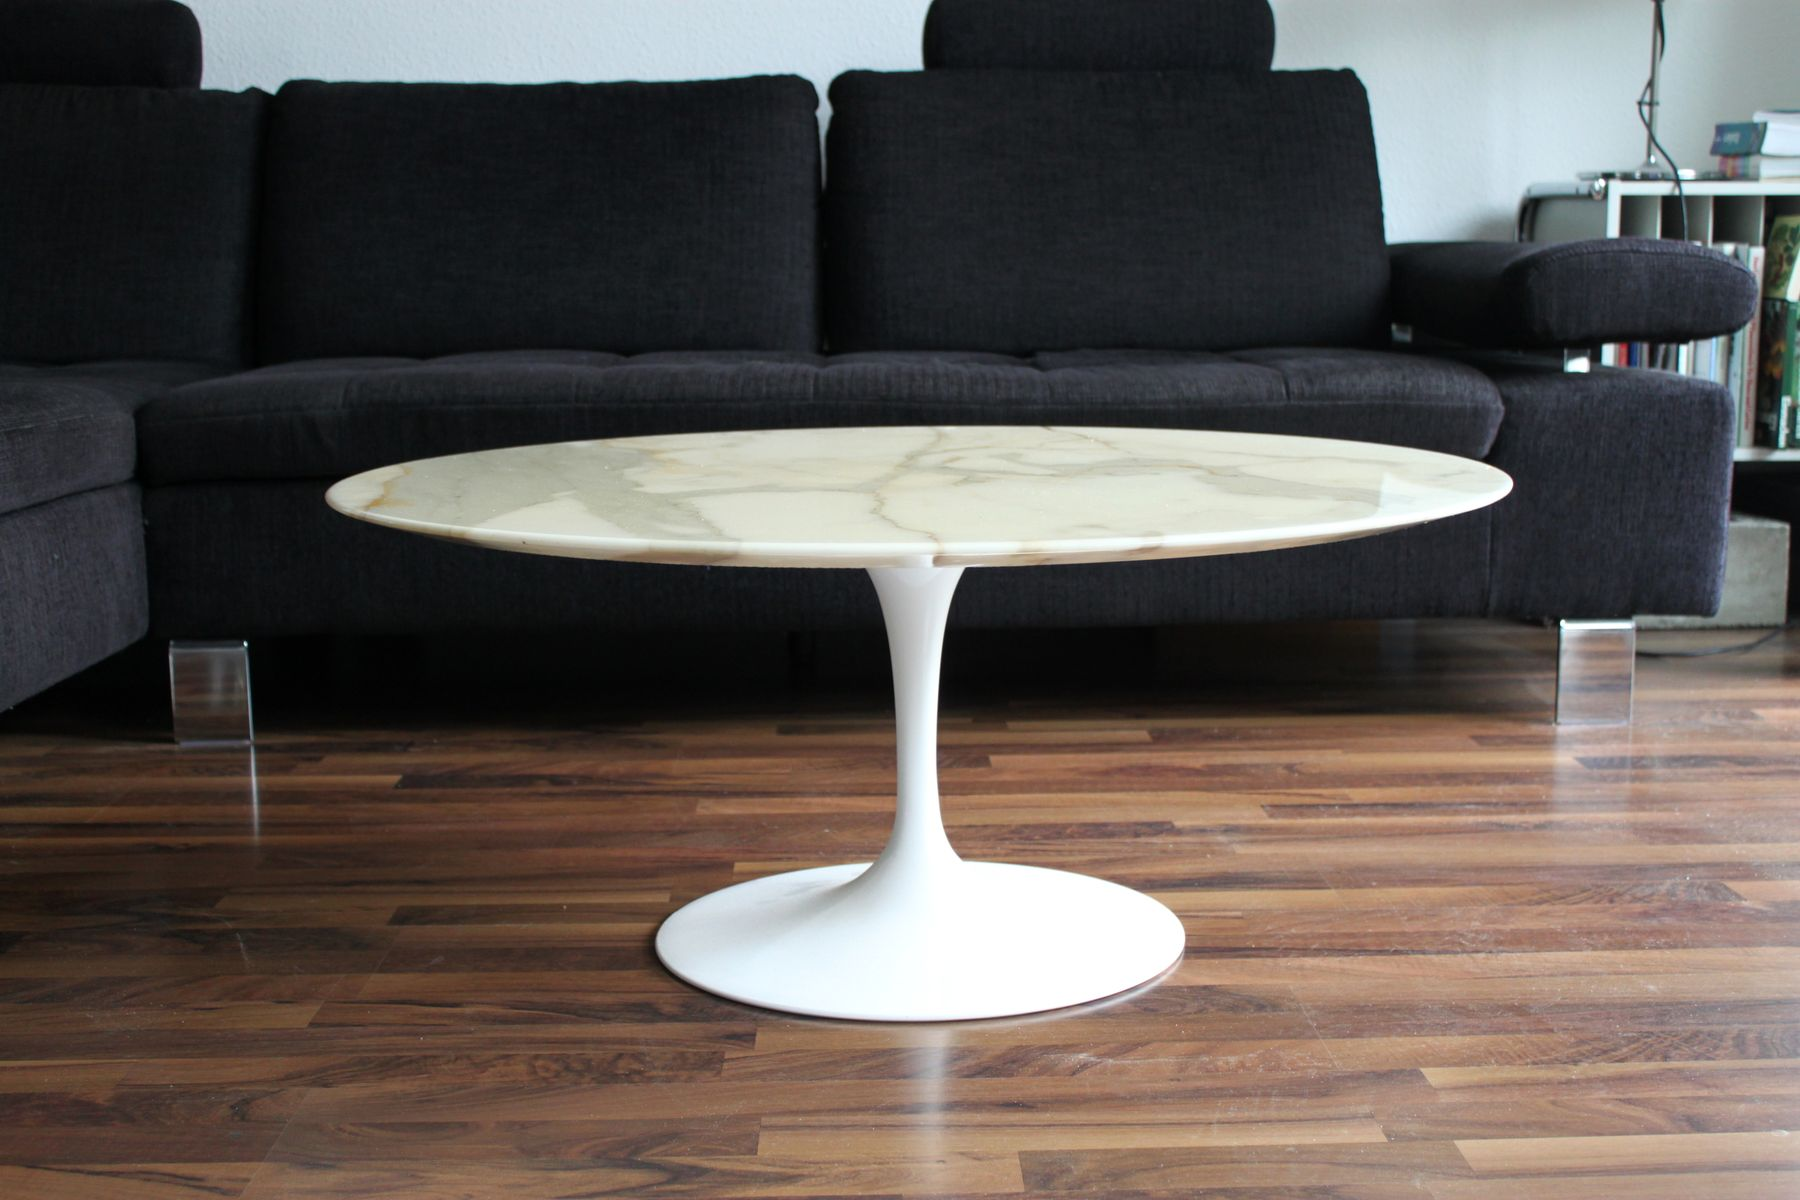 Delightful Mid Century Tulip Marble Coffee Table By Eero Saarinen For Knoll  International